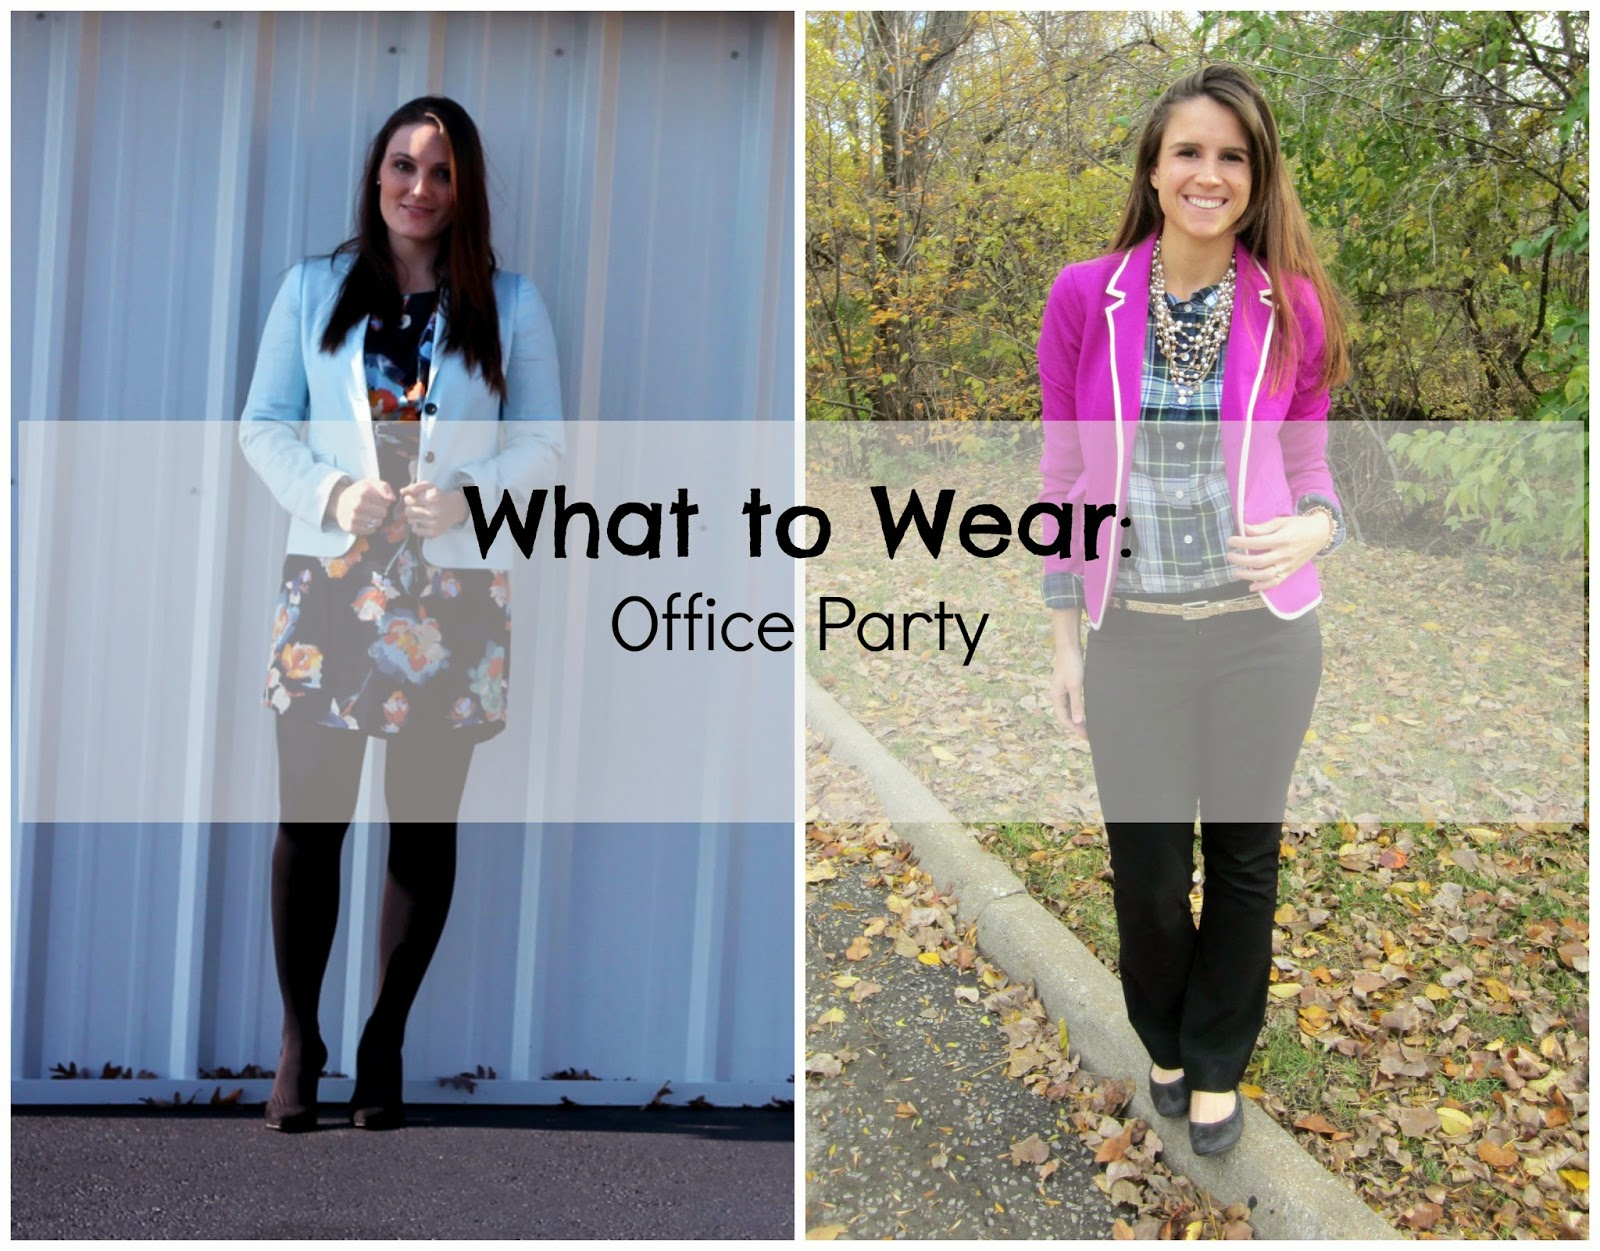 Company Christmas Party Dress.A Journey In Style What To Wear Office Party